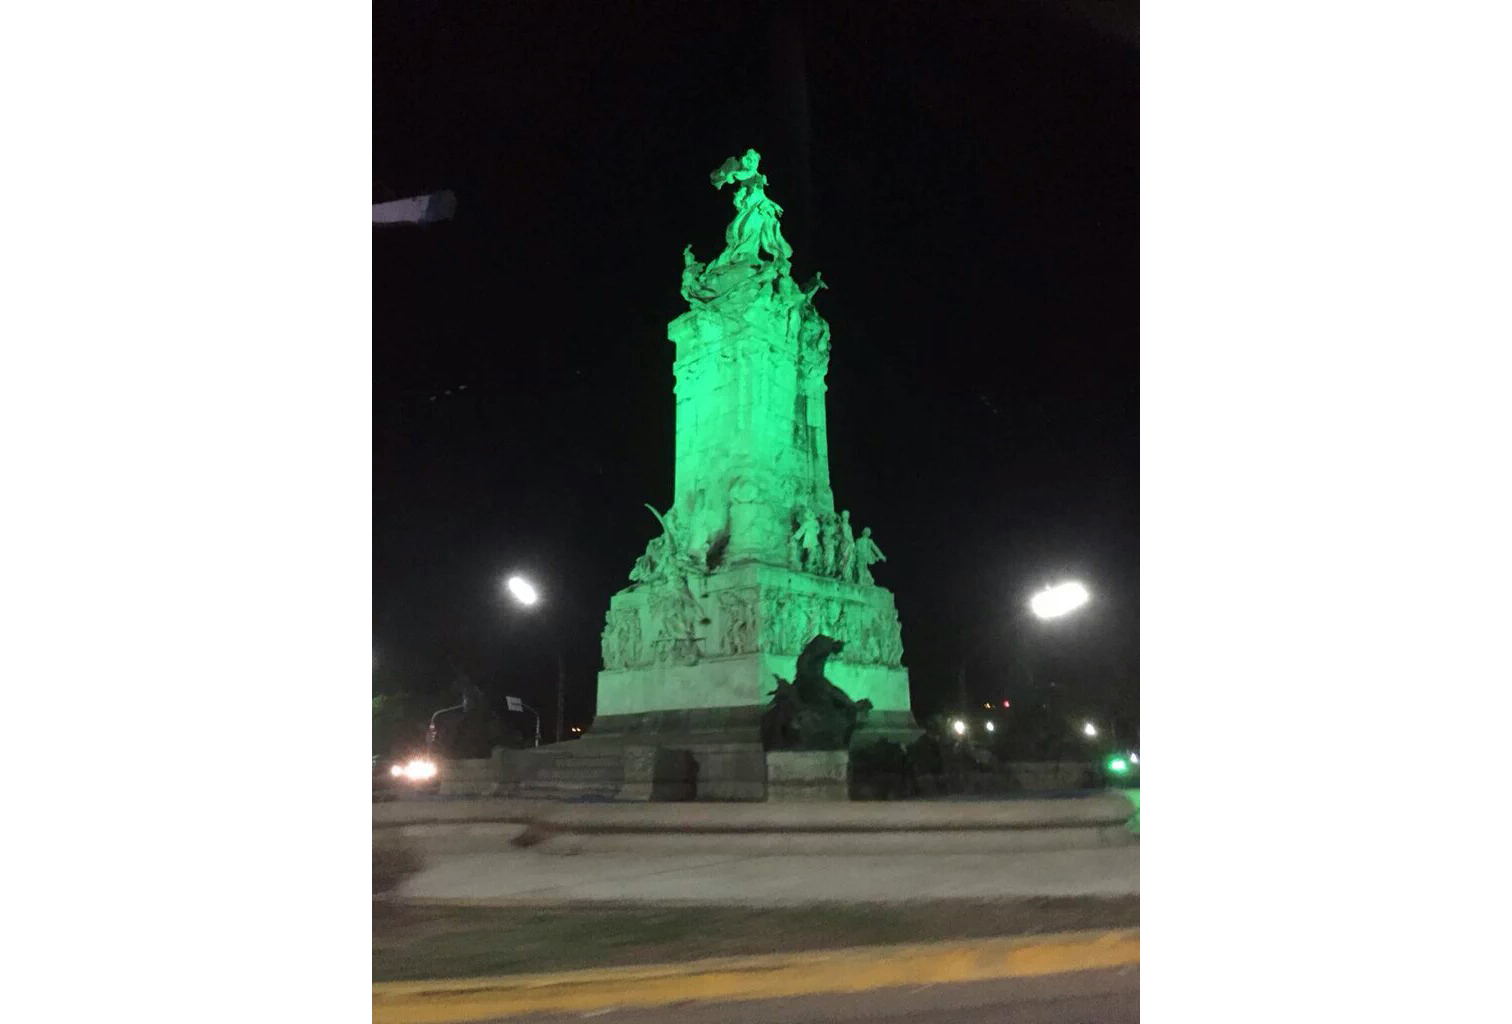 The Spanish Monument in Buenos Aires, raised in 1910 for the  centennial of Argentina's Revolution of May, illuminated green for Ireland's own centenary.